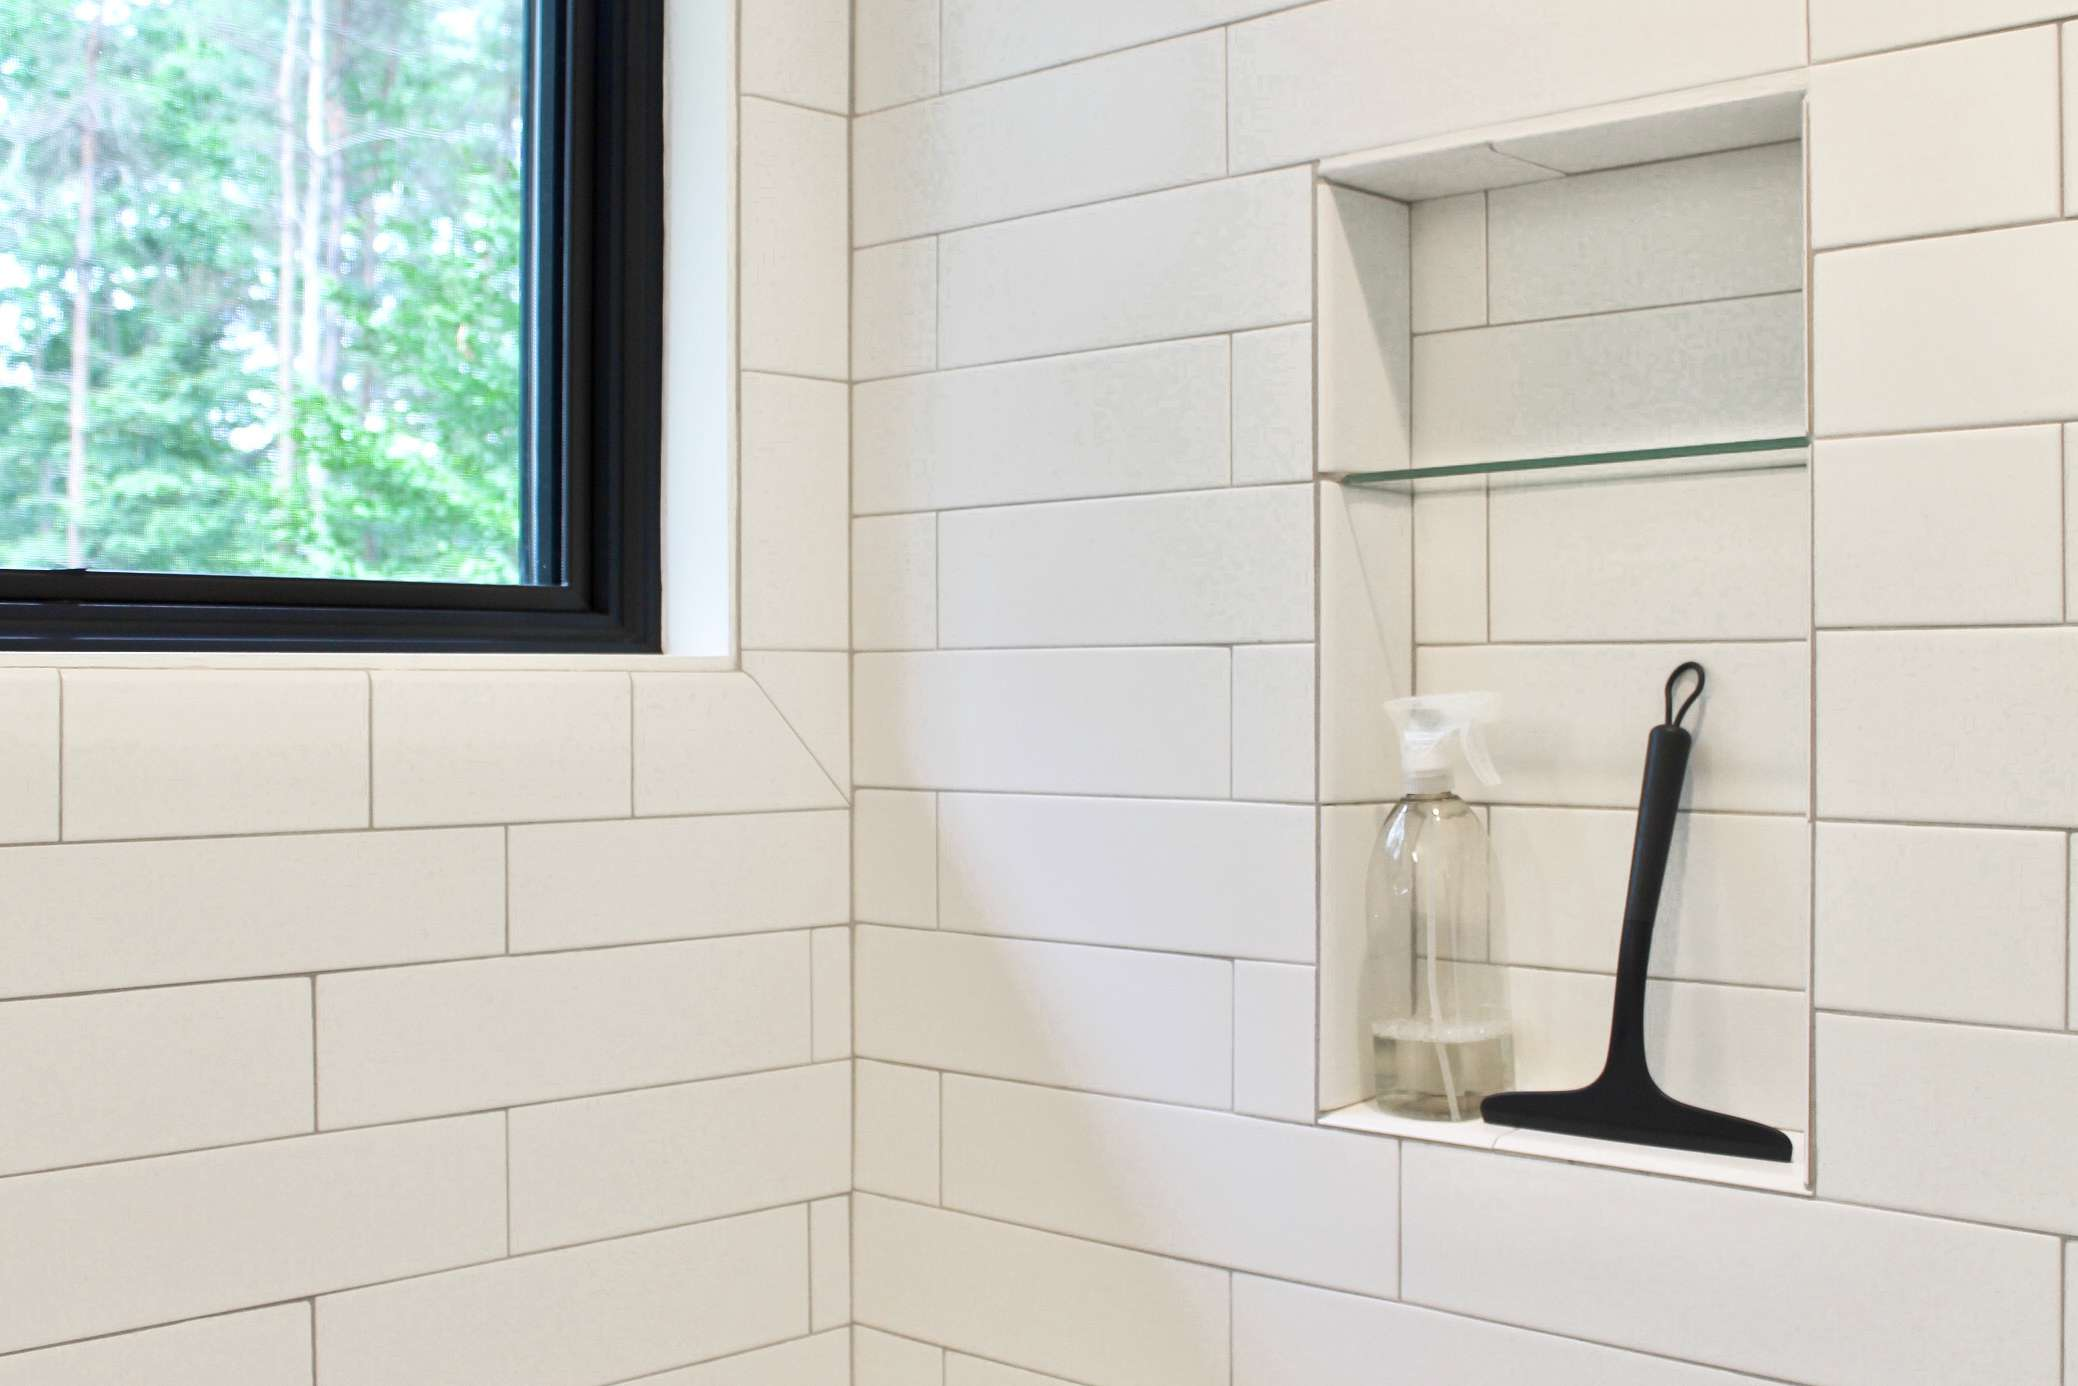 squeegee and spray for post-shower mineral deposit prevention